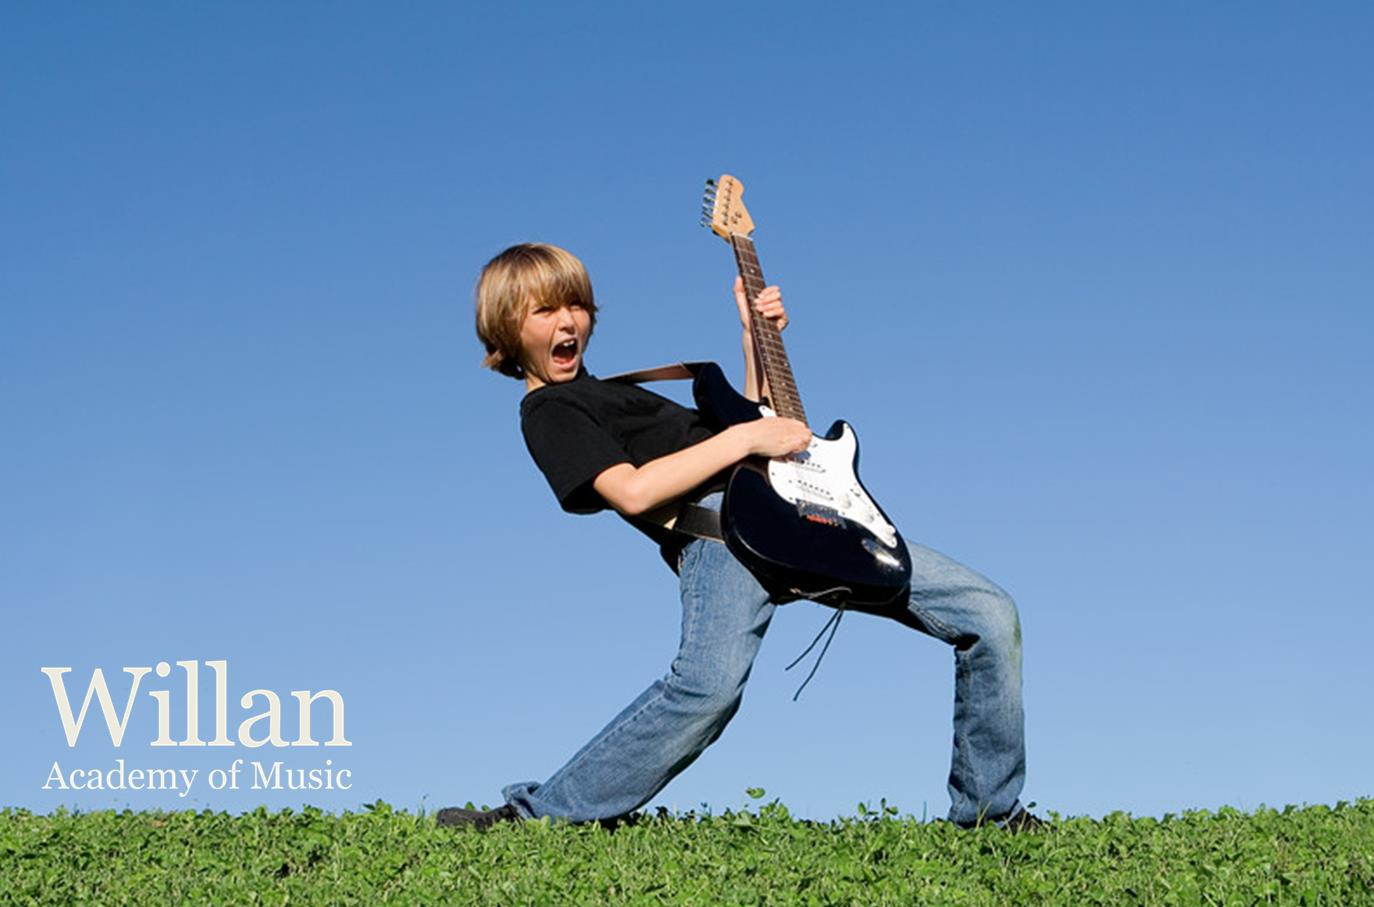 Playing Guitar and How to Overcome Stage Fright, Guitar lessons nyc, Manhattan, Brooklyn, Queens, Harlem, Washington Heights, Guitar lessons near me